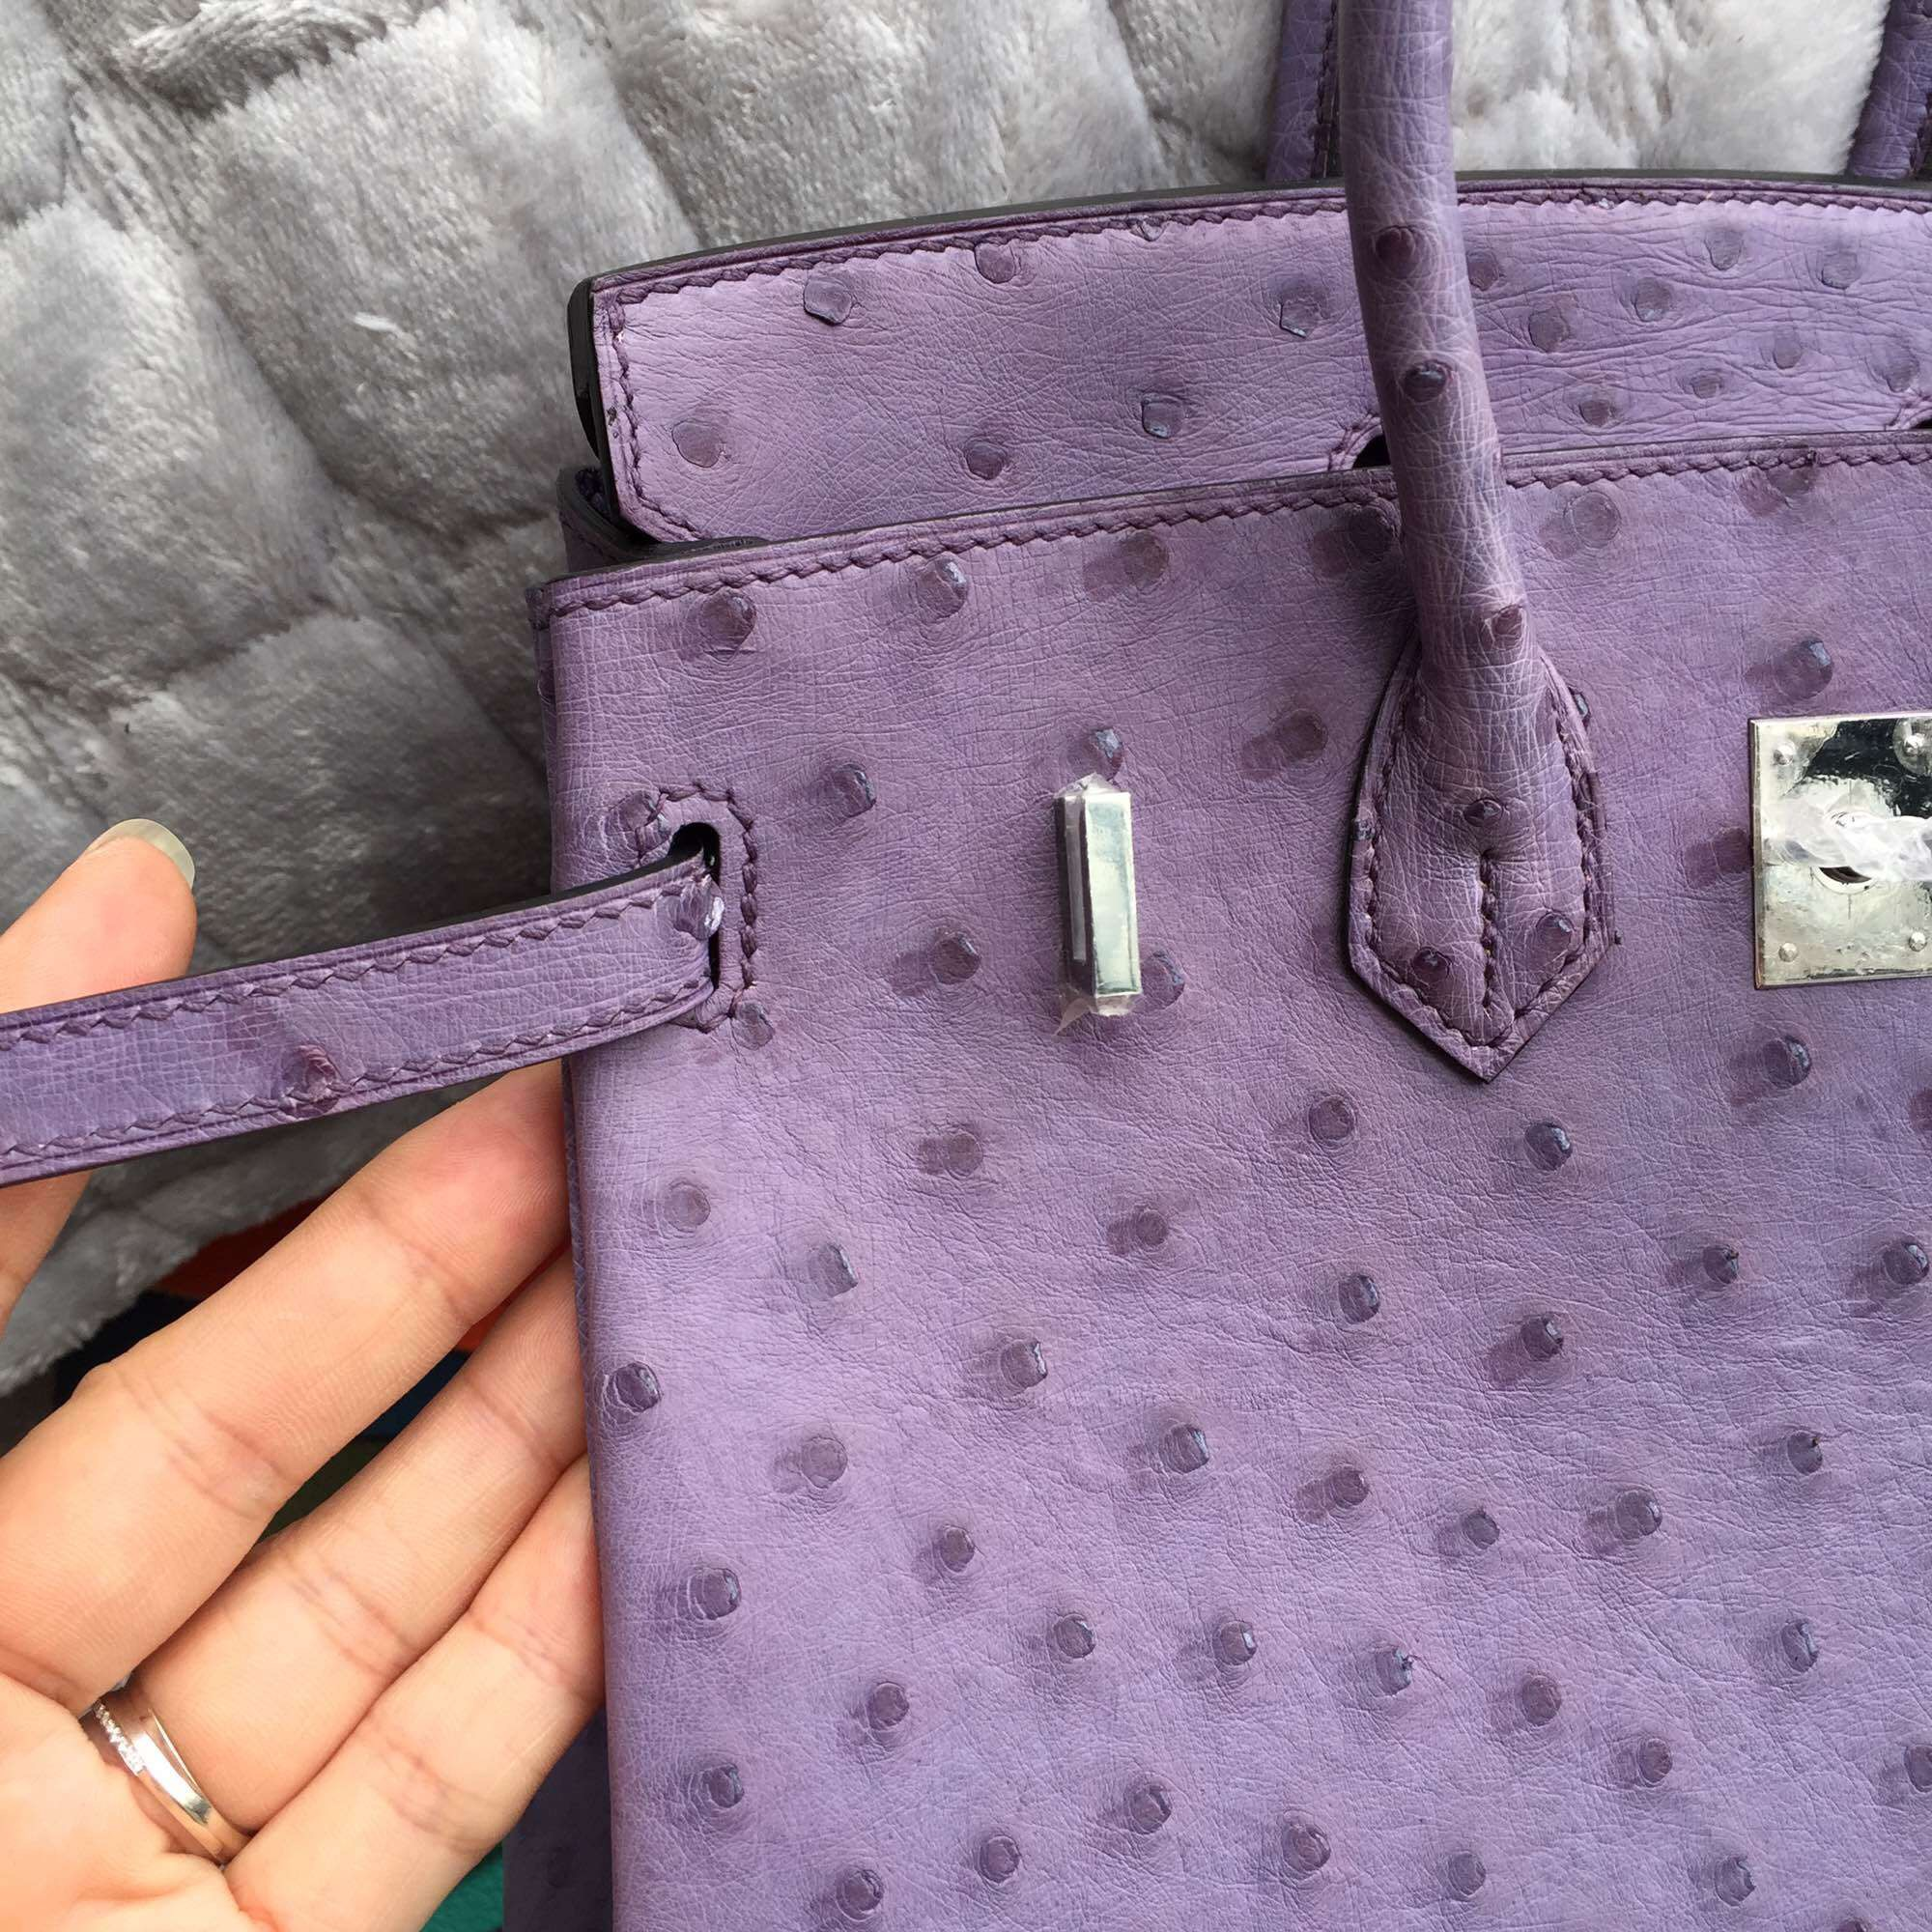 Discount 25CM Hermes Birkin Bag in Light Purple Ostrich Leather Silver Hardware